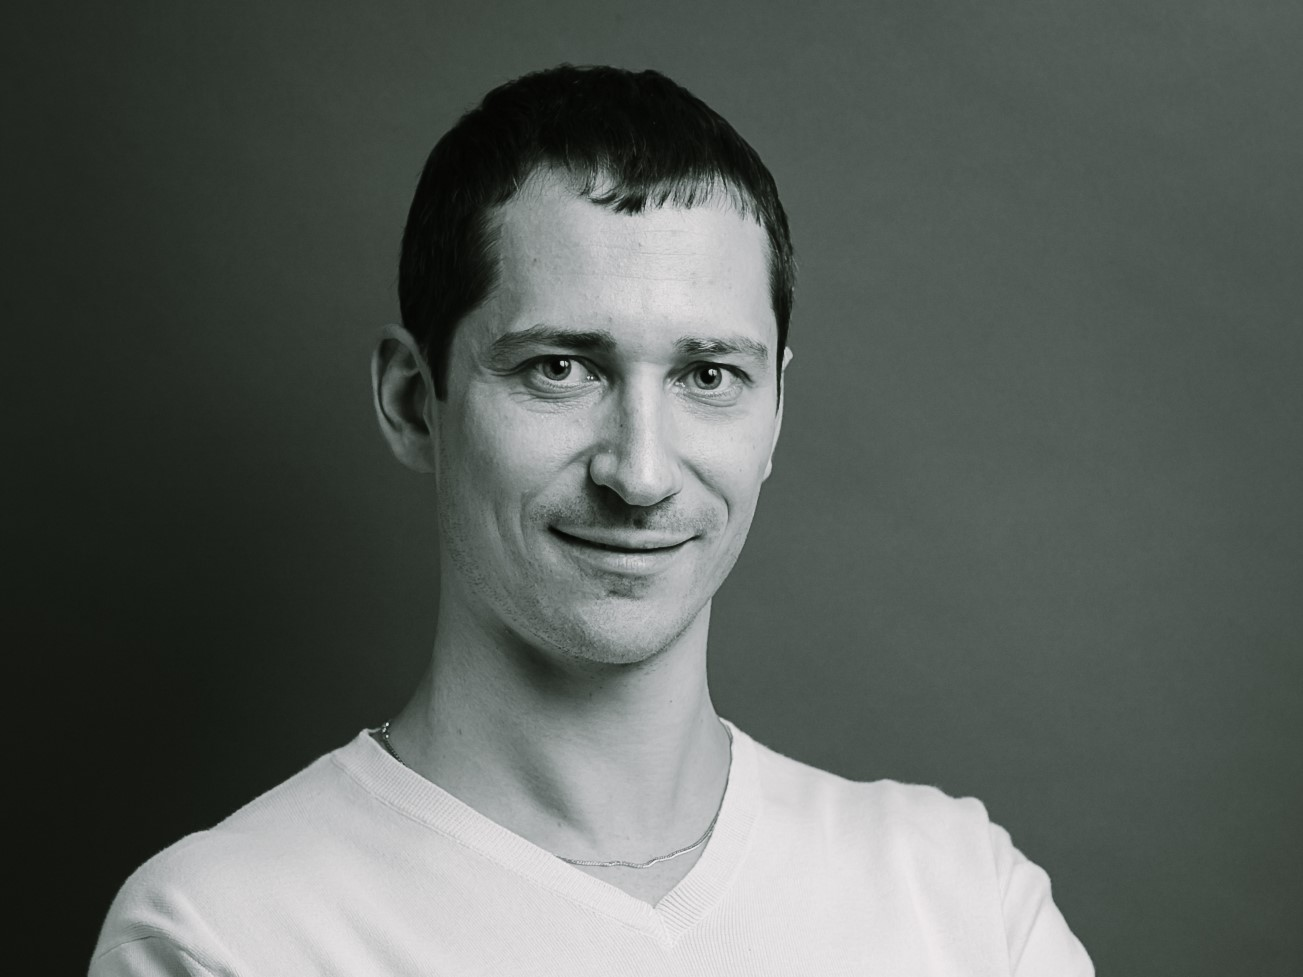 Dark-haired man in white v-necked t-shirt. Black and white photo.